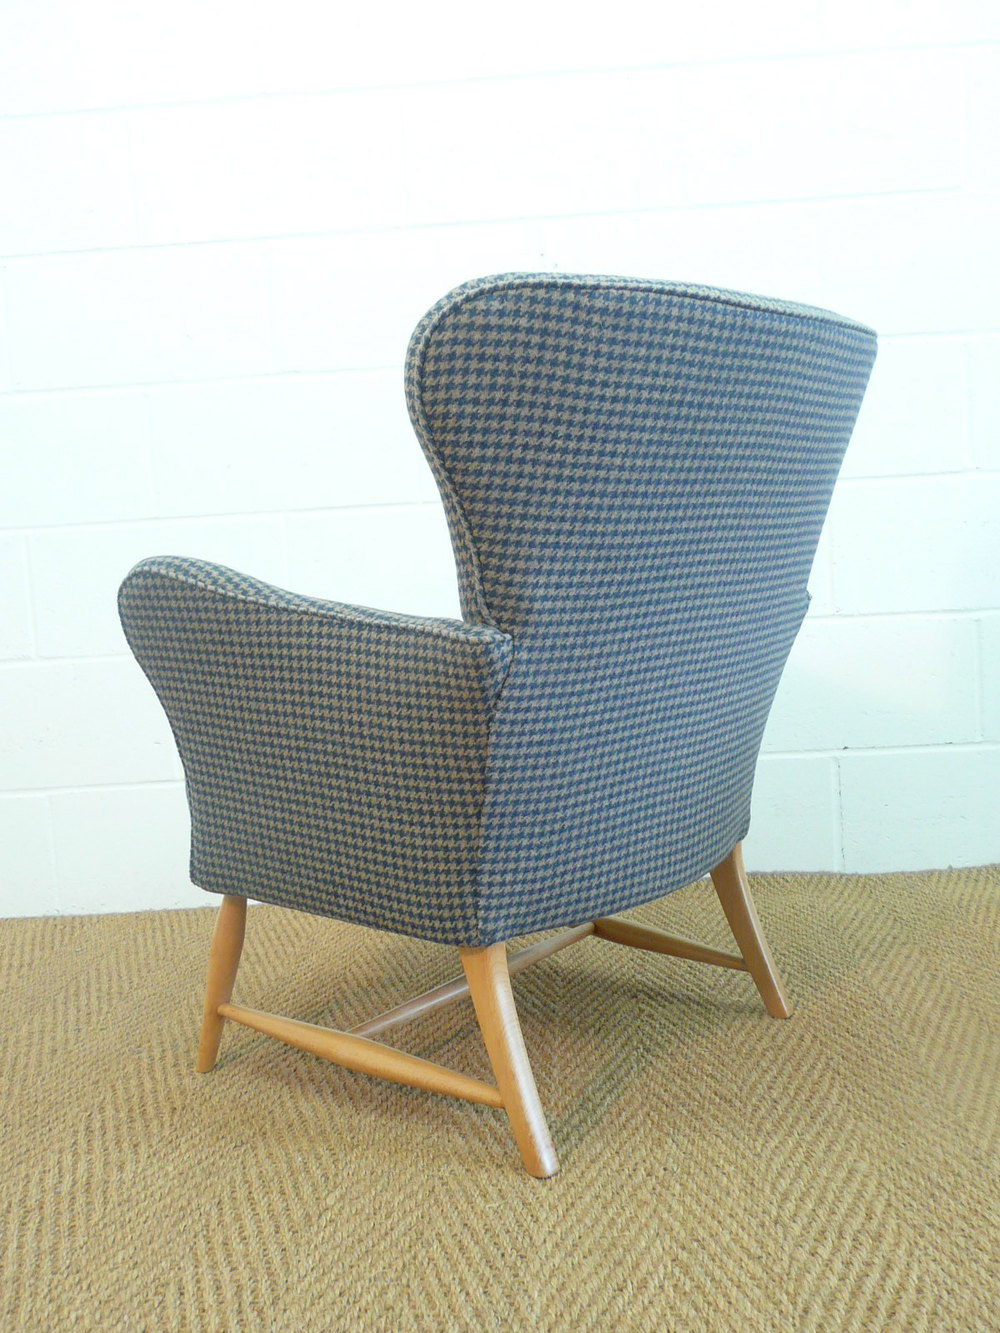 from Allan dating ercol chairs